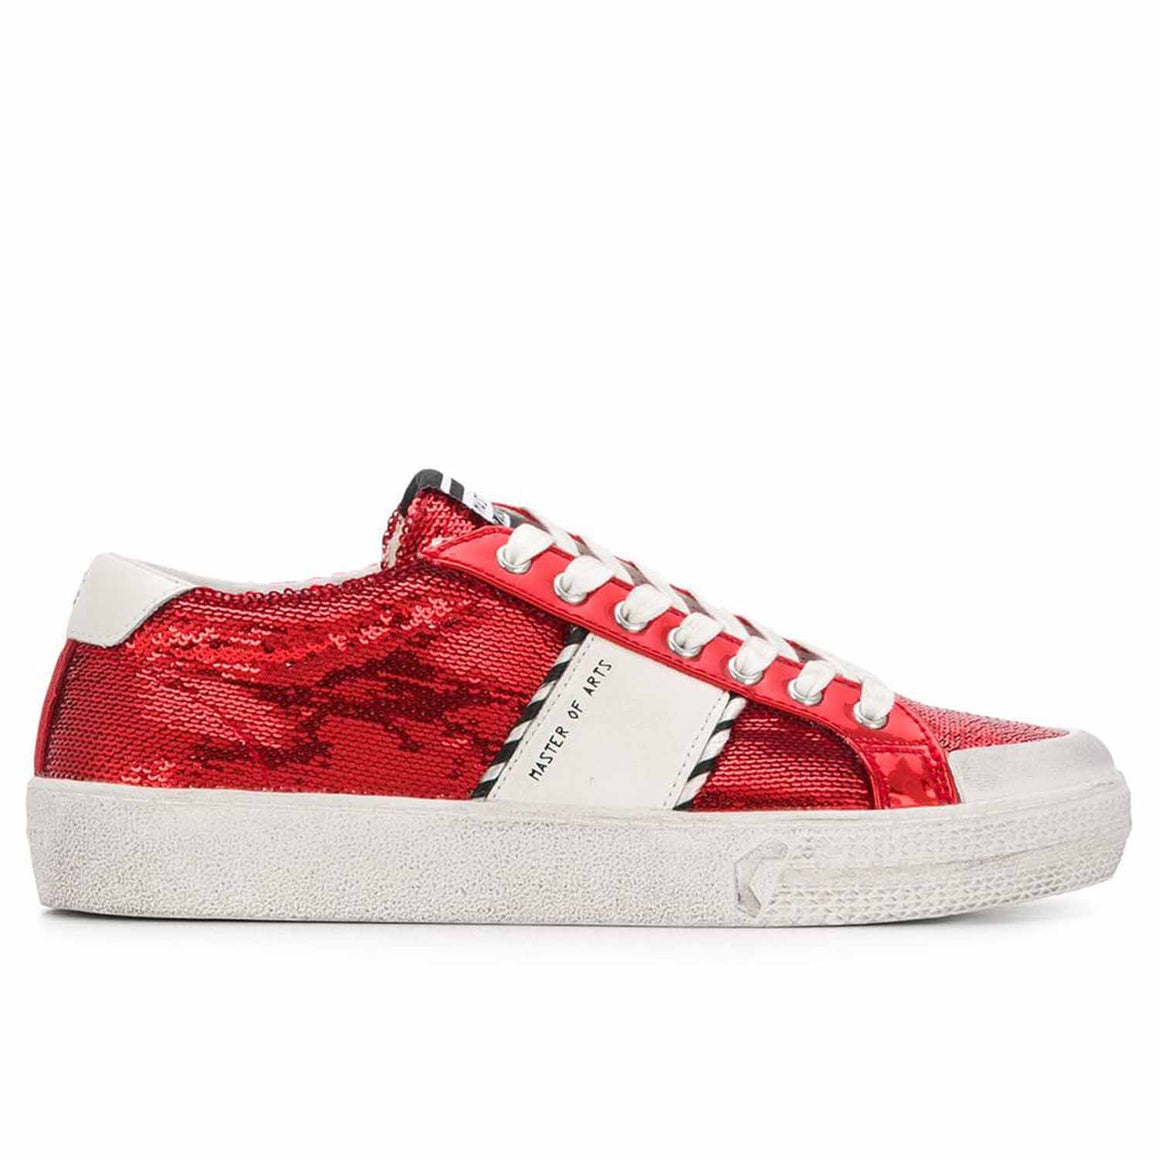 MOA MASTER OF ARTS sequin logo sneakers